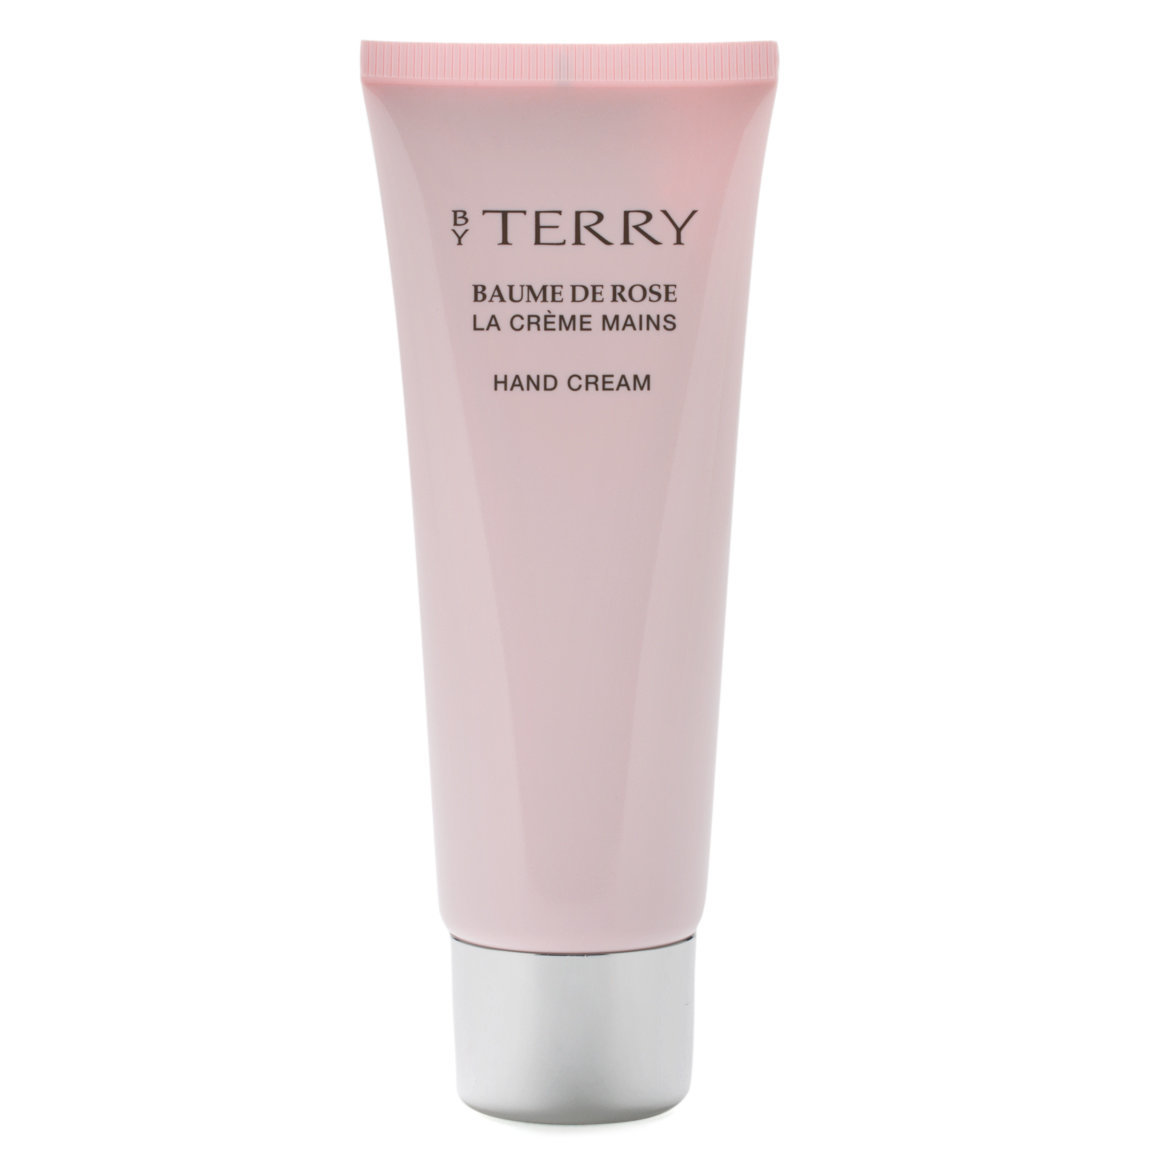 BY TERRY Baume de Rose Hand Cream product smear.